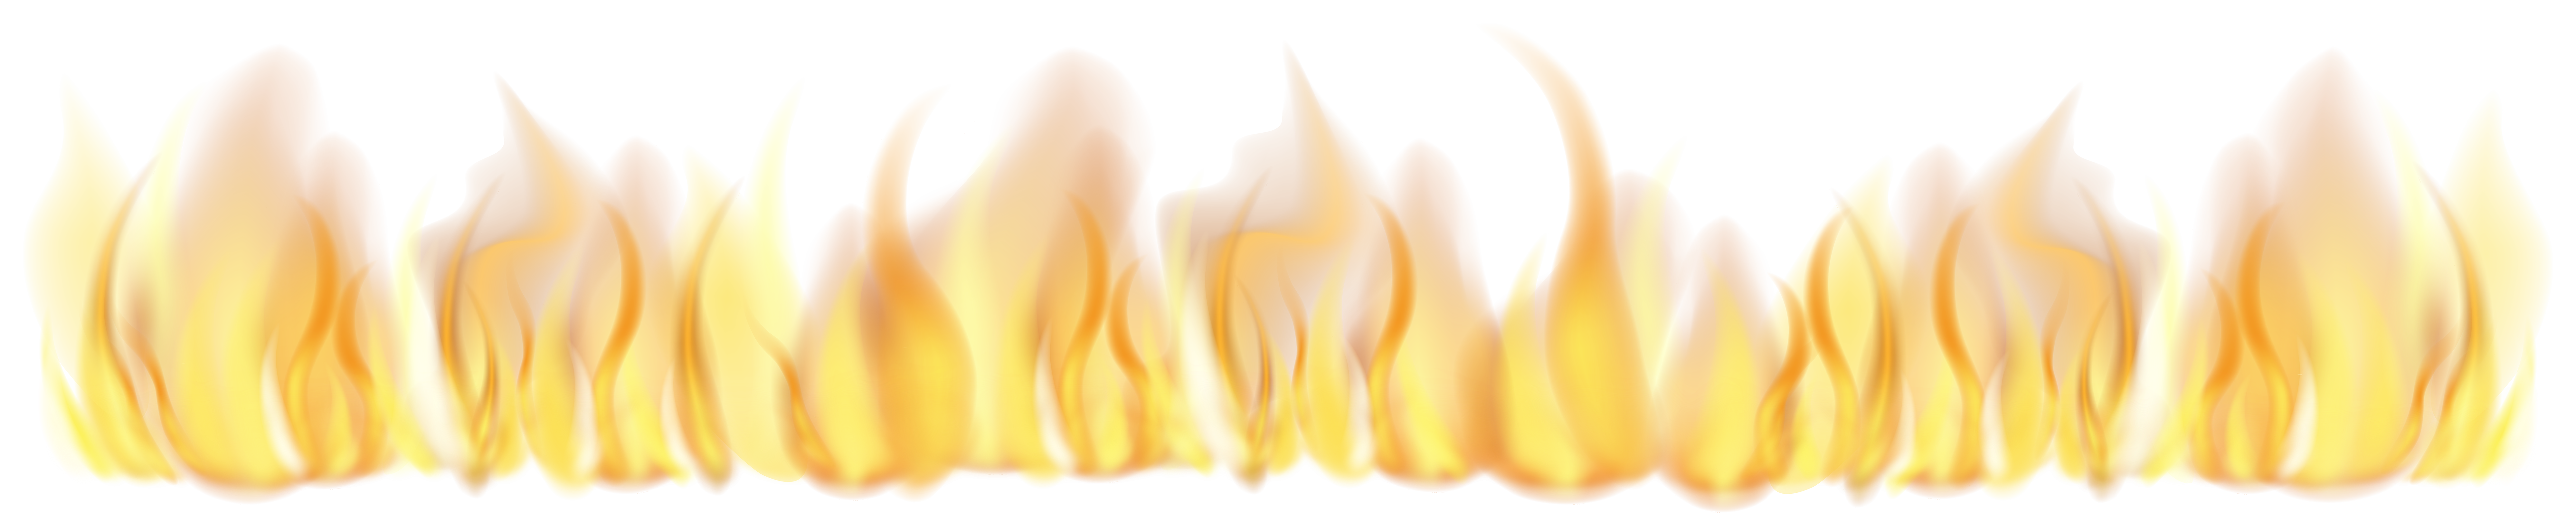 Fire Line PNG Clipart Gallery Yopriceville High